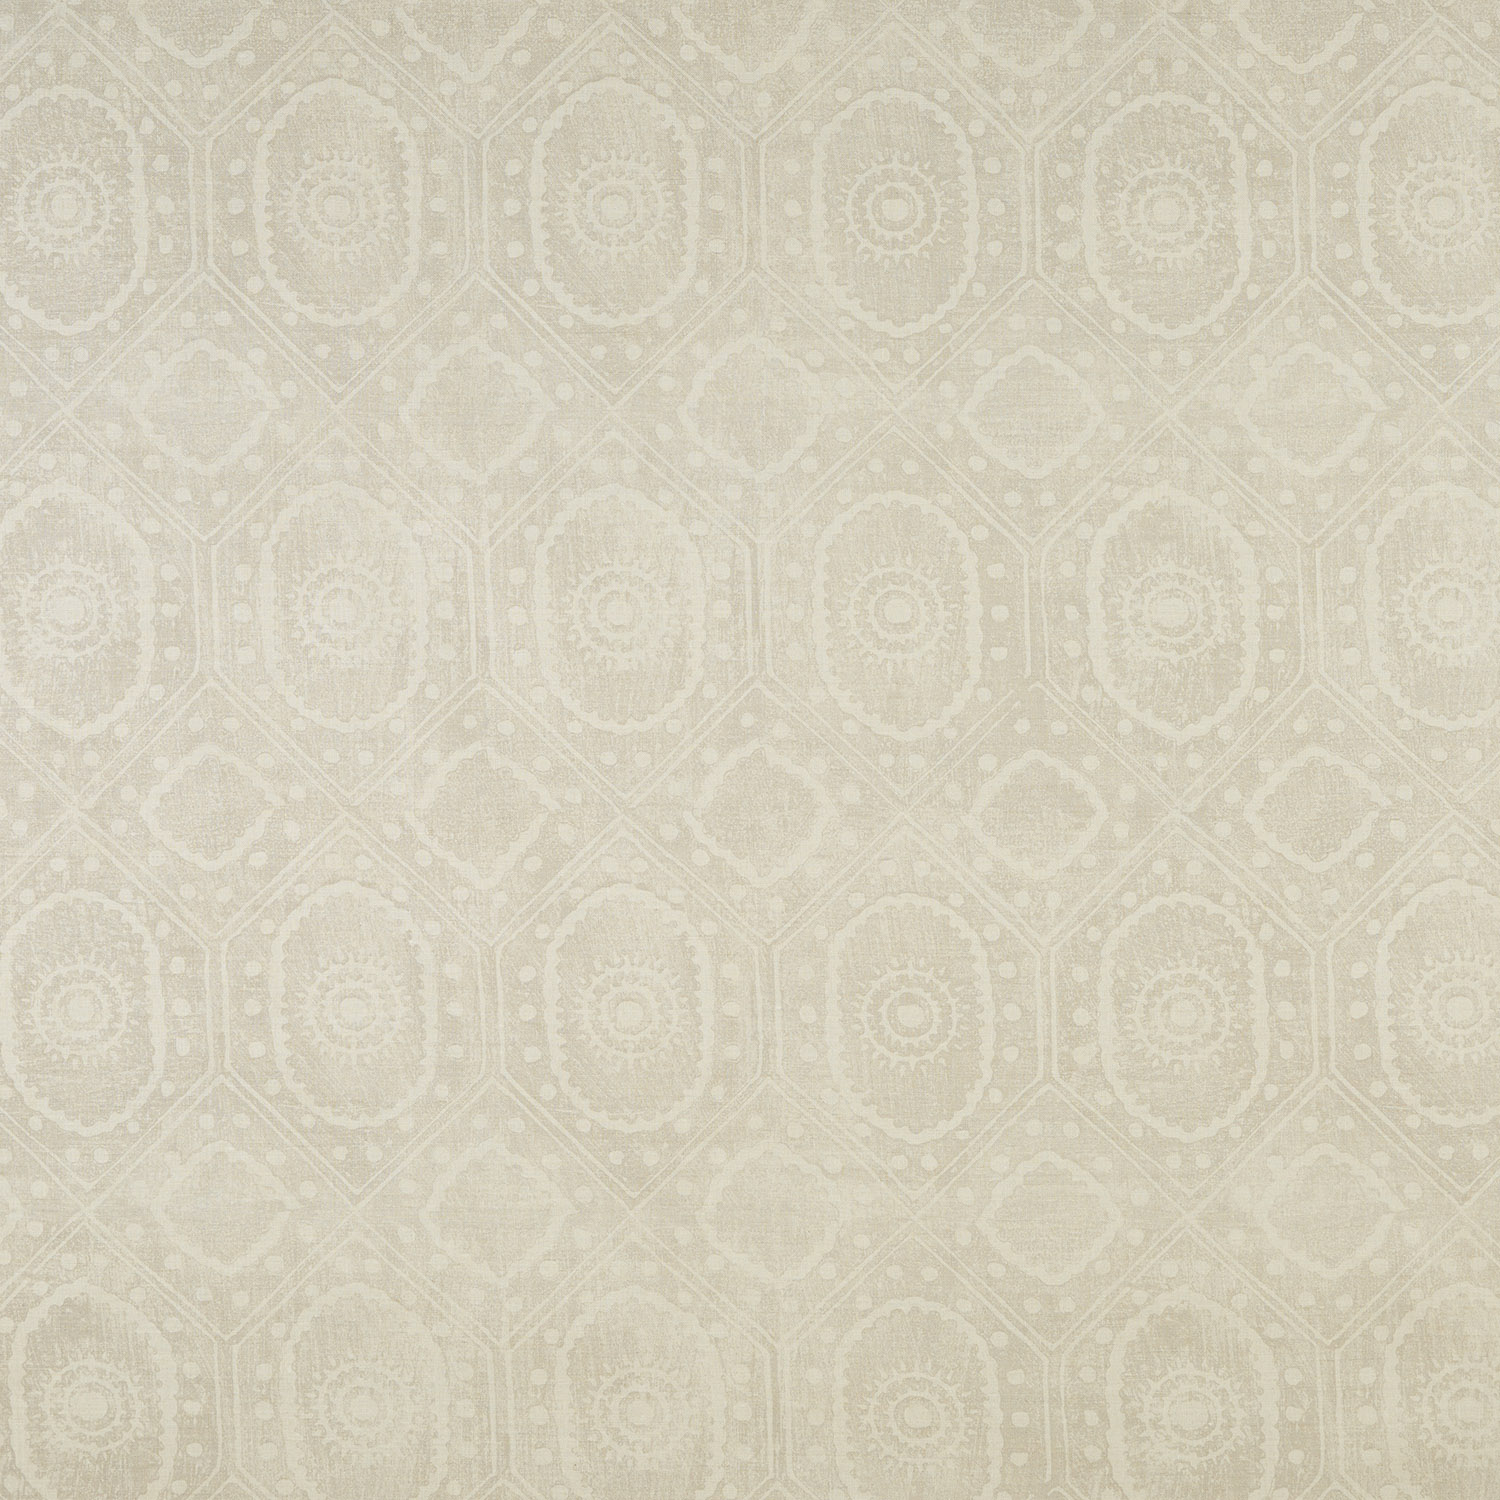 <p><strong>DIAMOND</strong>grey/natural 2400-02<a href=/the-somerton-collection/diamond-grey-natural-2400-02>More →</a></p>